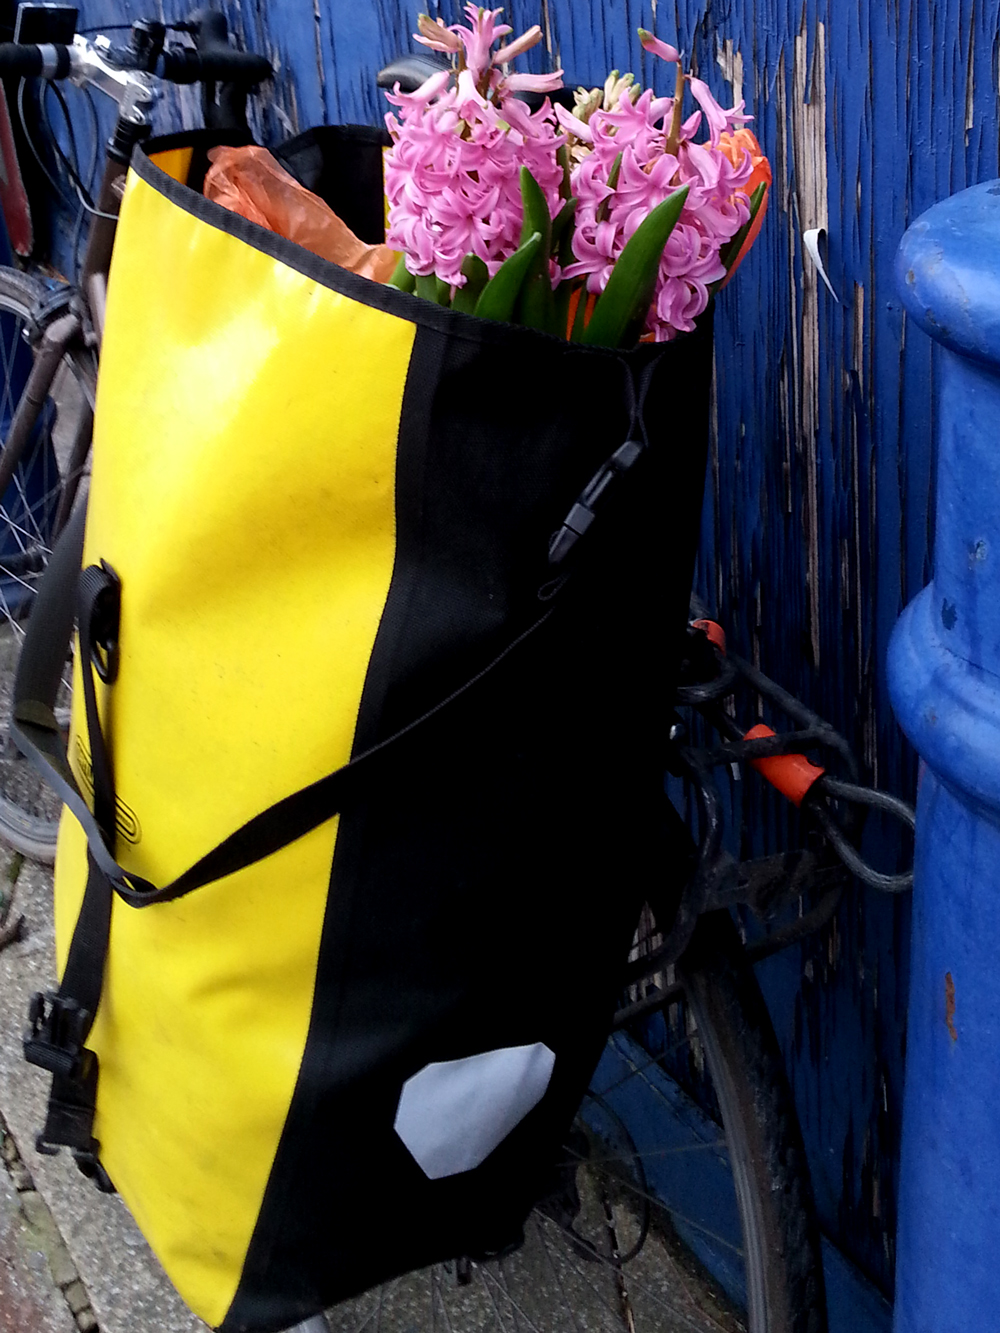 Bike-with-flowers-pothole-gardener